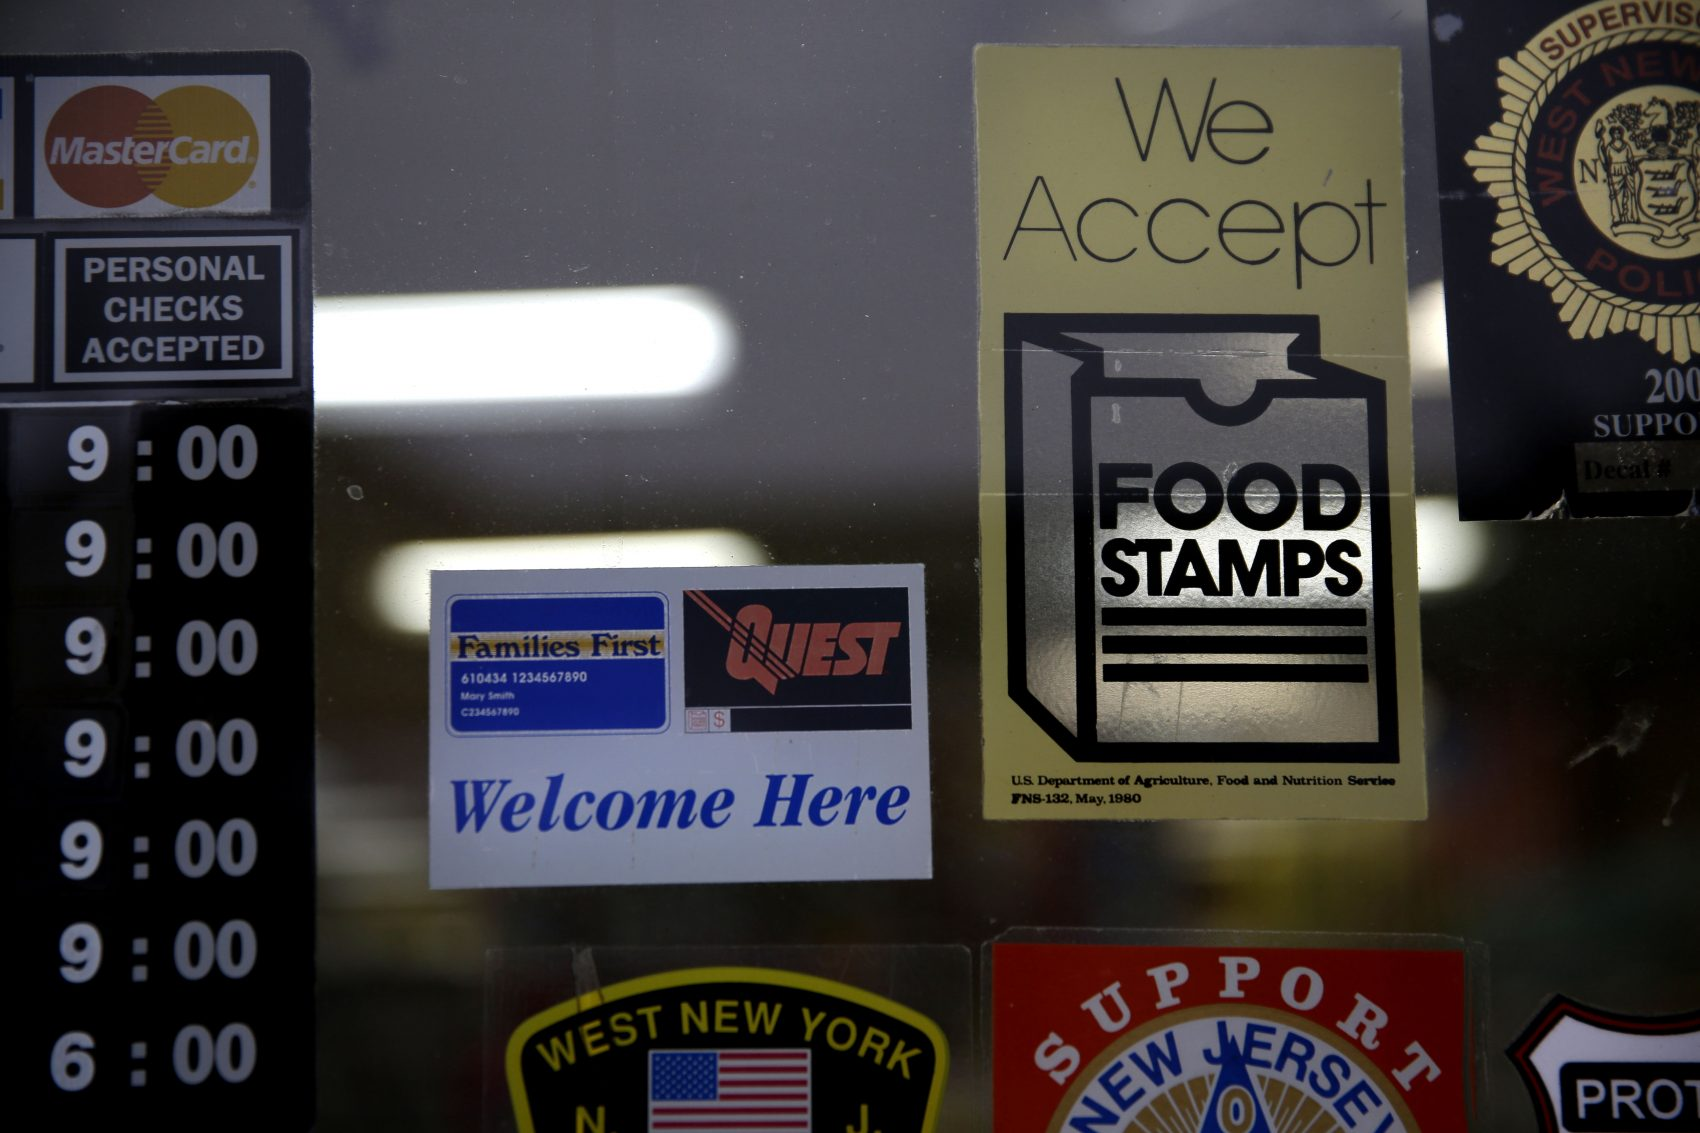 A supermarket displays stickers indicating they accept food stamps in West New York, N.J., Monday, Jan. 12, 2015. (Seth Wenig/AP)